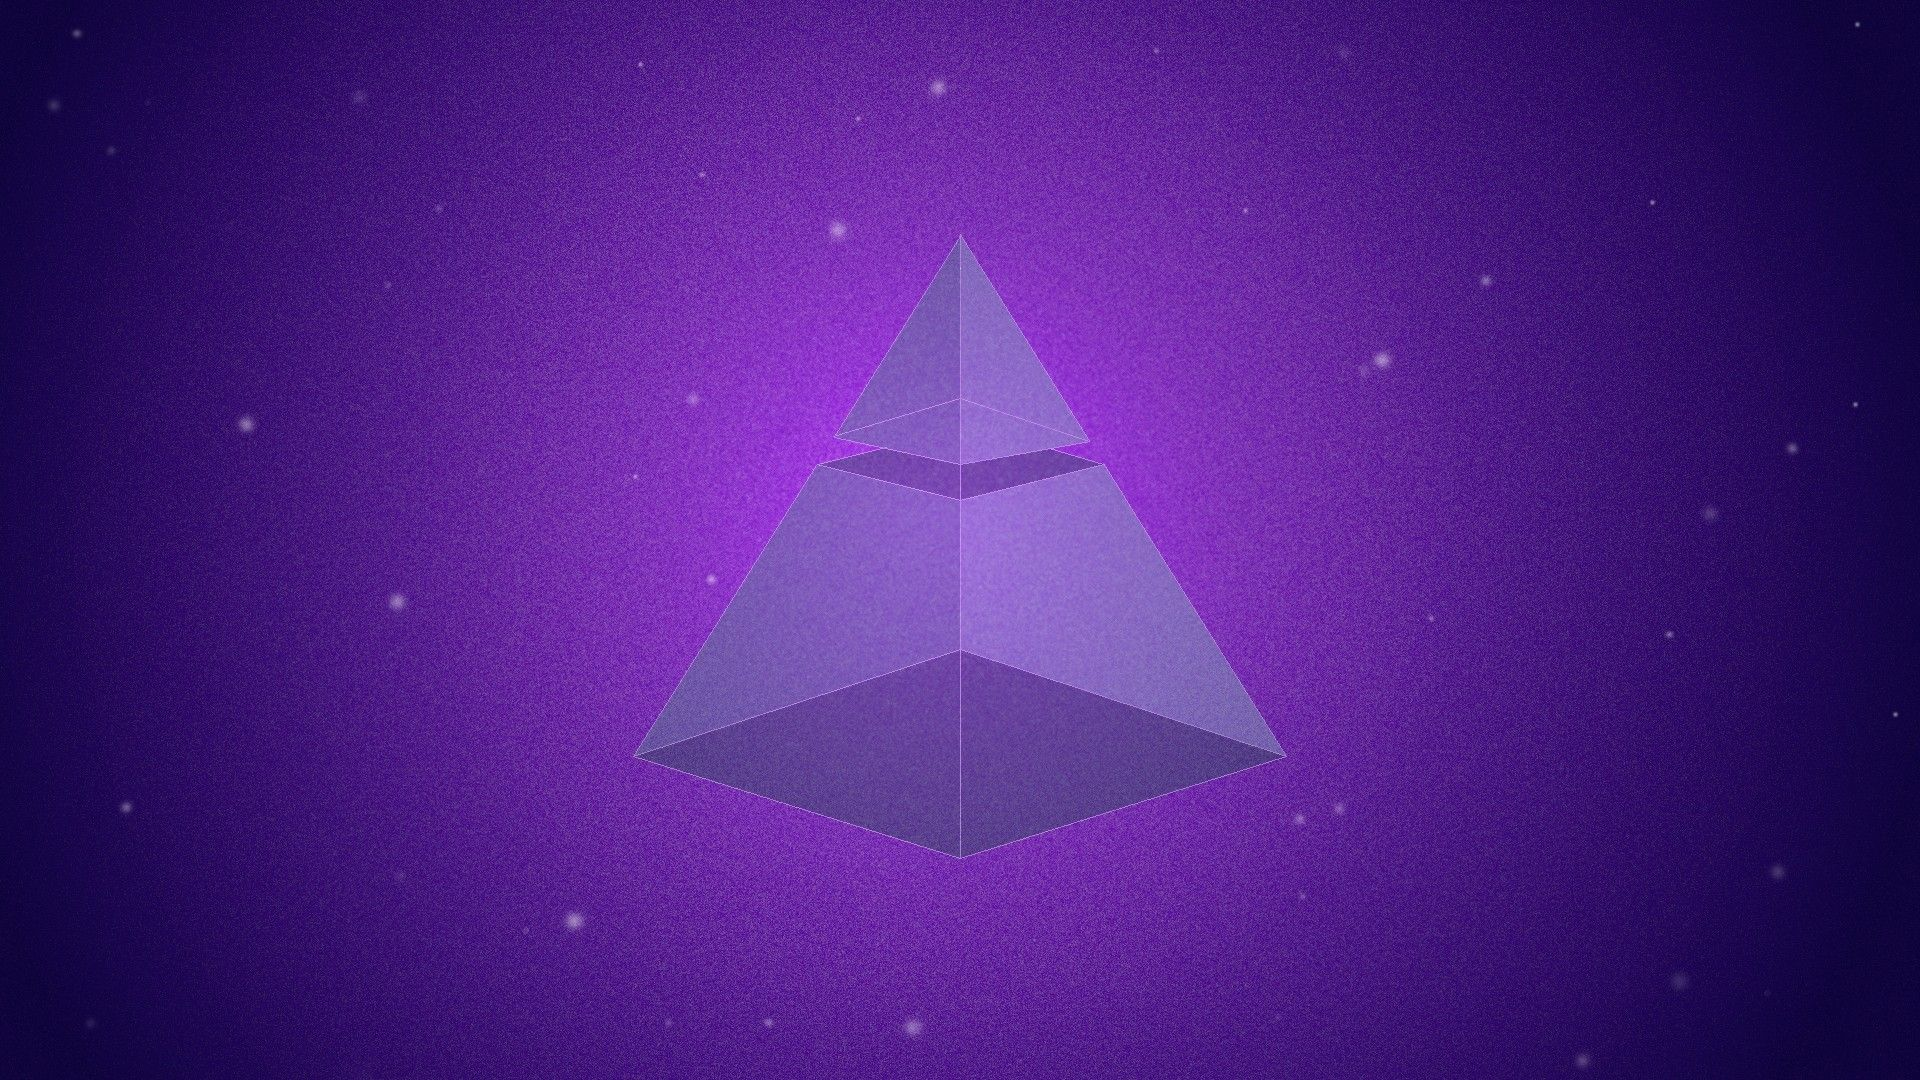 Triangle Free Wallpaper and Background